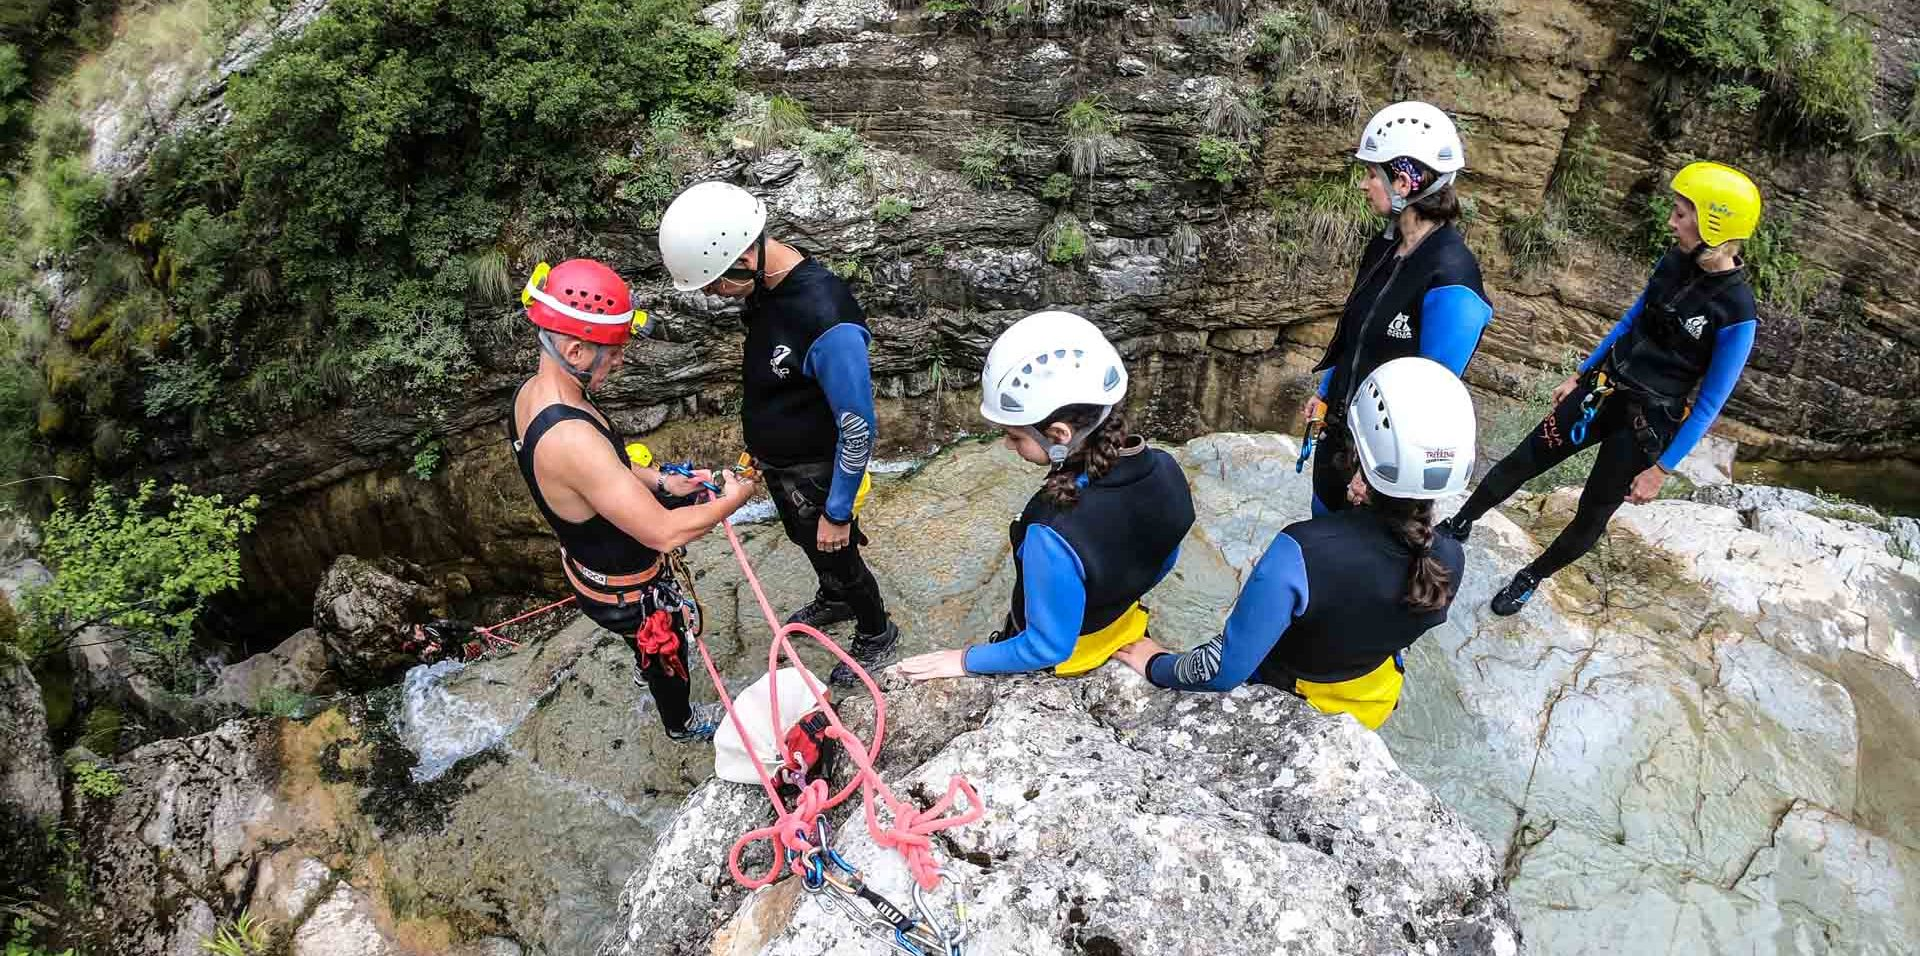 Rogkovos ‎canyoning Adventure Tour From Papigko Village - Ioannina_94_3.jpg